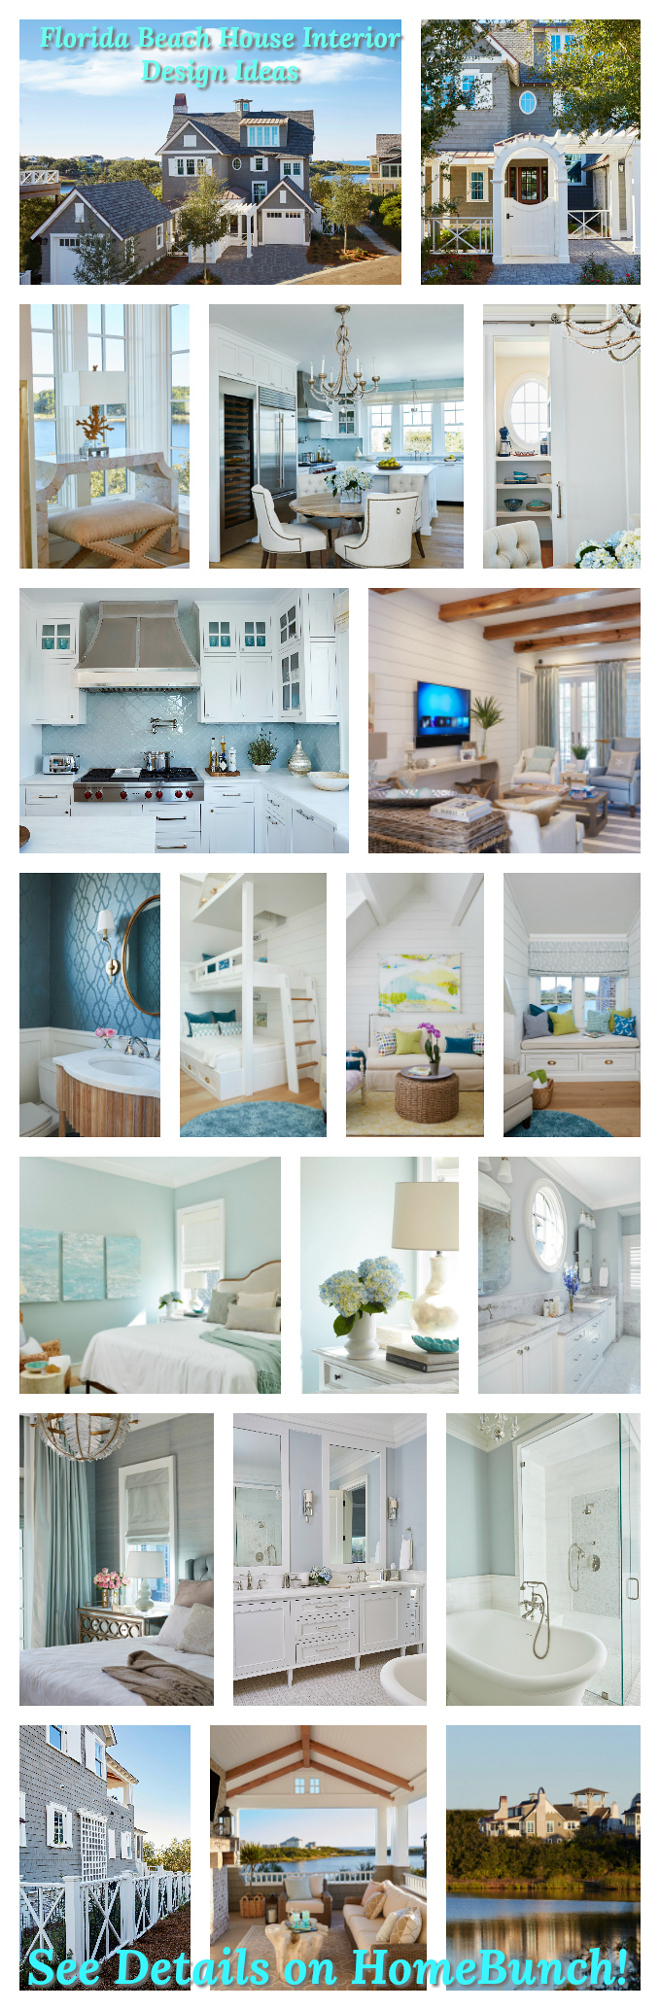 Florida Beach House Interior Design Ideas Paint colors and decor sources Florida Beach House Interior Design Ideas